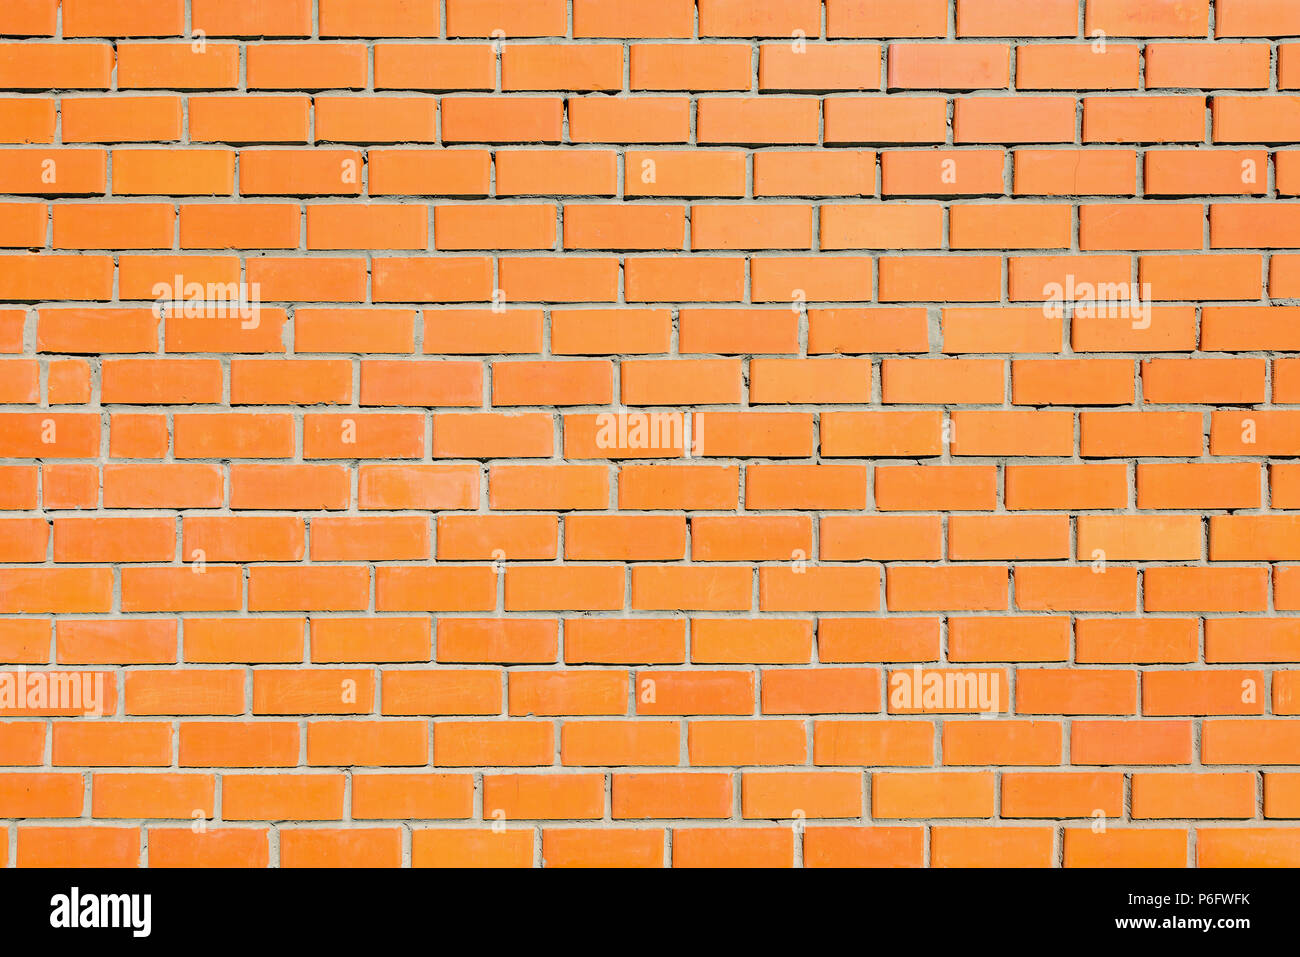 Red brick wall background. - Stock Image